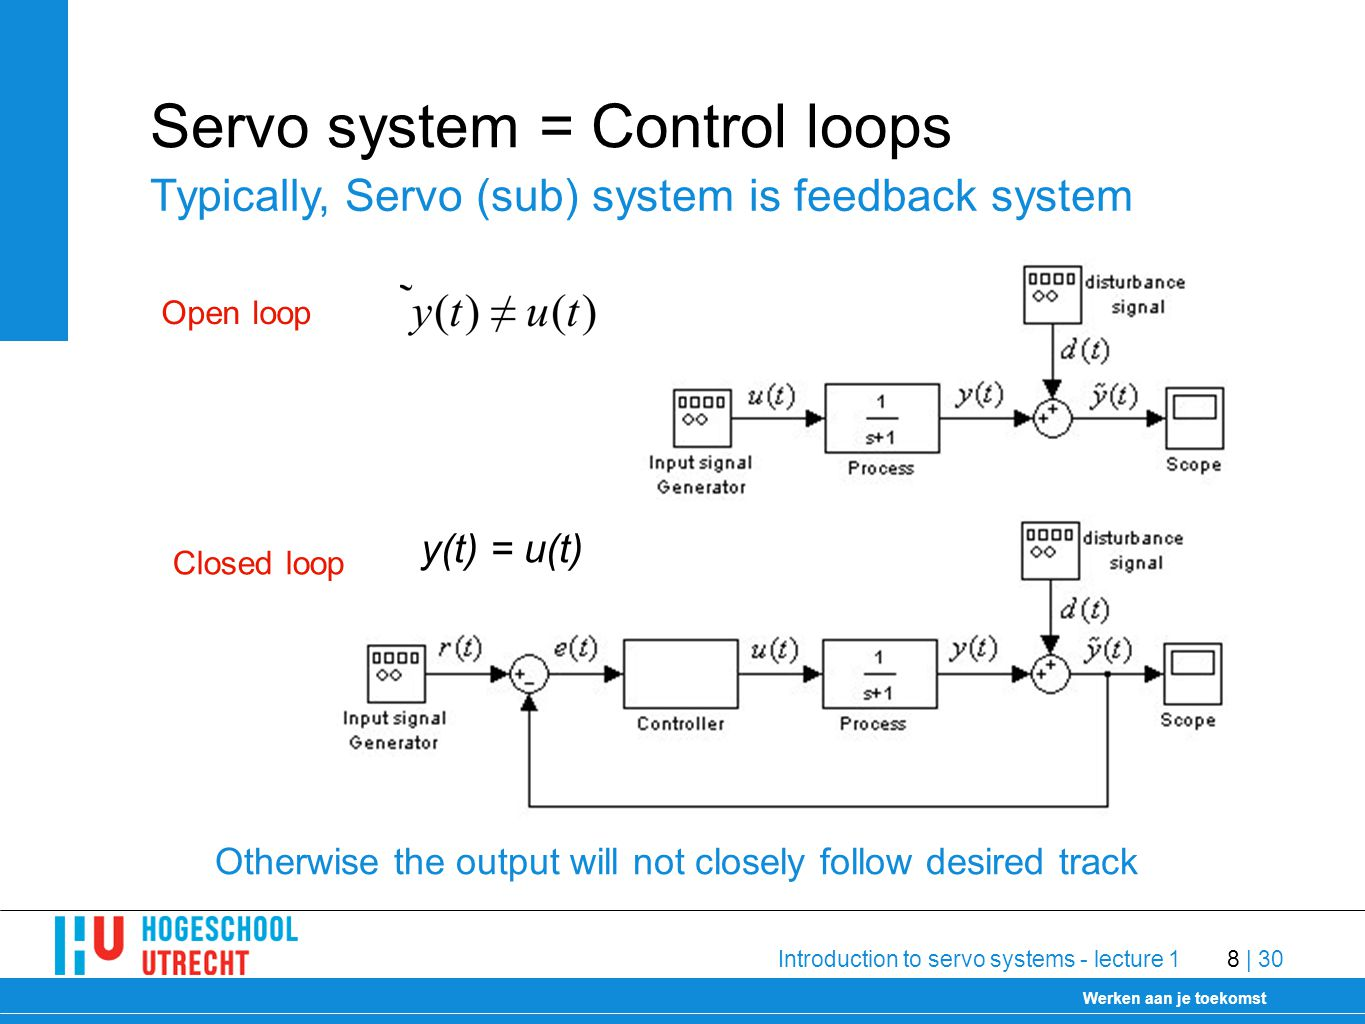 Delft University of Technology Werken aan je toekomst 30-1-2009 Introduction to servo systems - lecture 18 | 30 Servo system = Control loops Typically, Servo (sub) system is feedback system Otherwise the output will not closely follow desired track Open loop Closed loop y(t) = u(t)